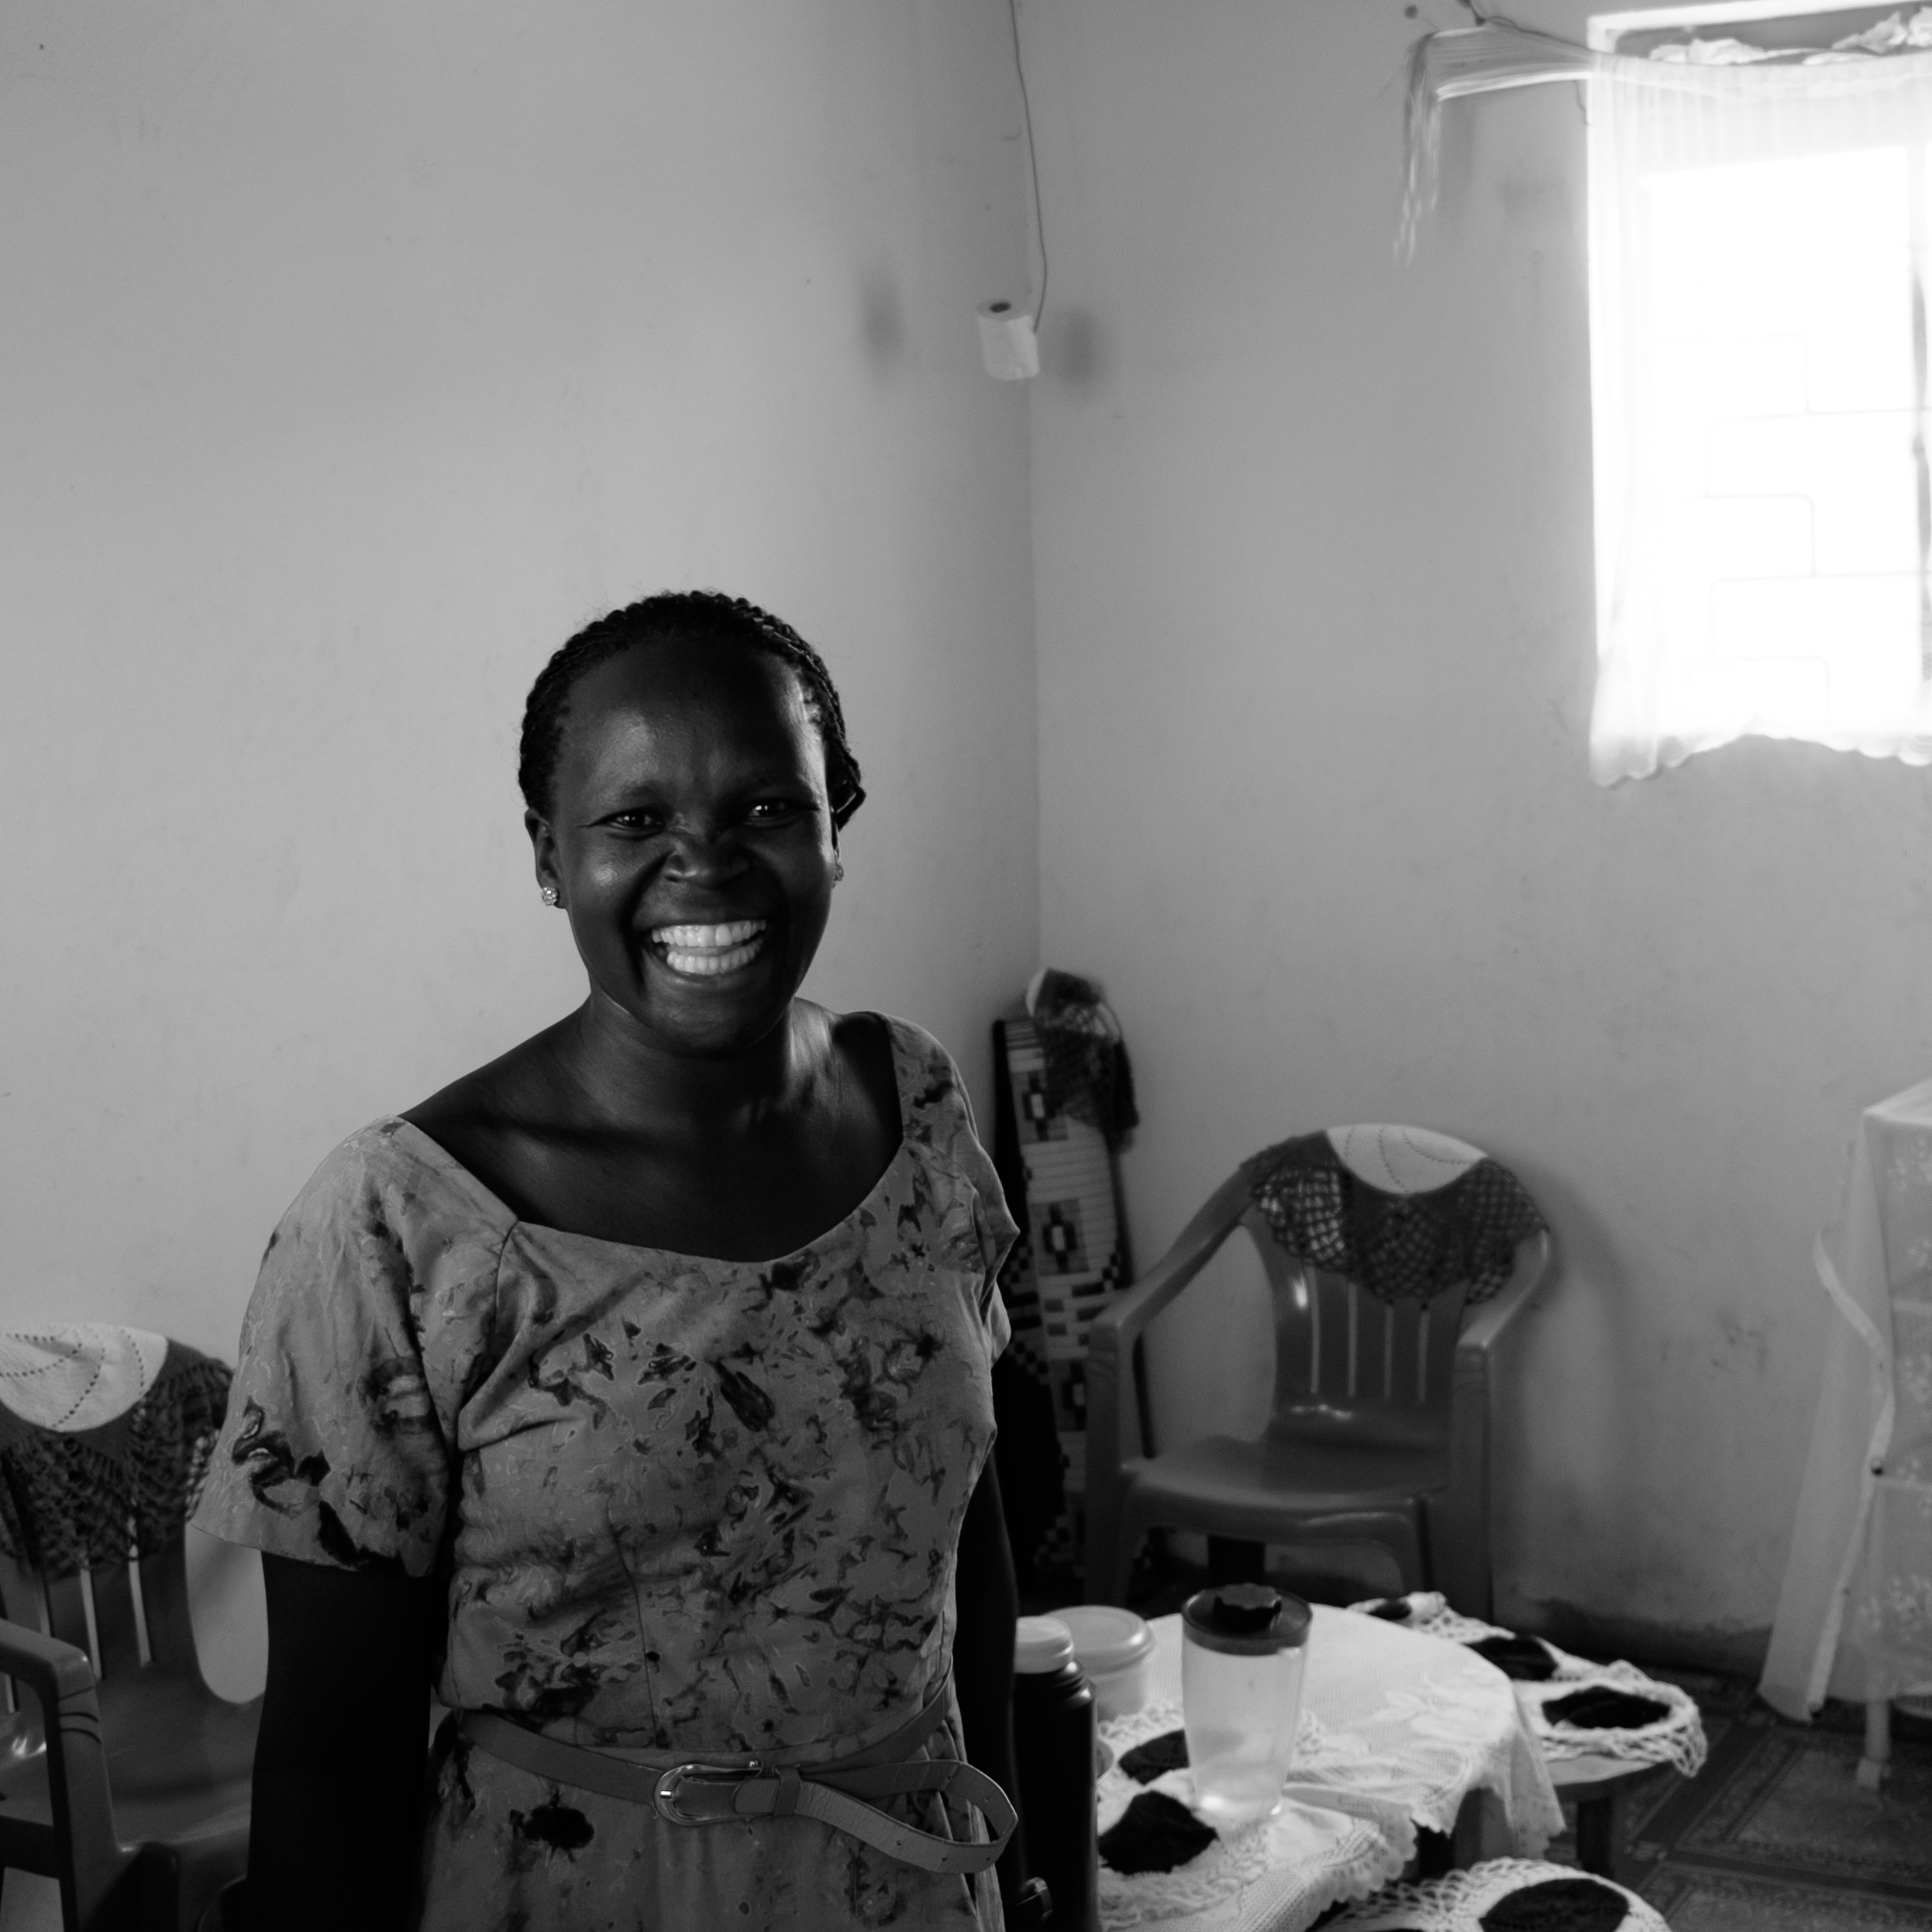 Betty, one of the incredible teachers who made the shoot remotely possible. Unbridled enthusiasm from minute one.